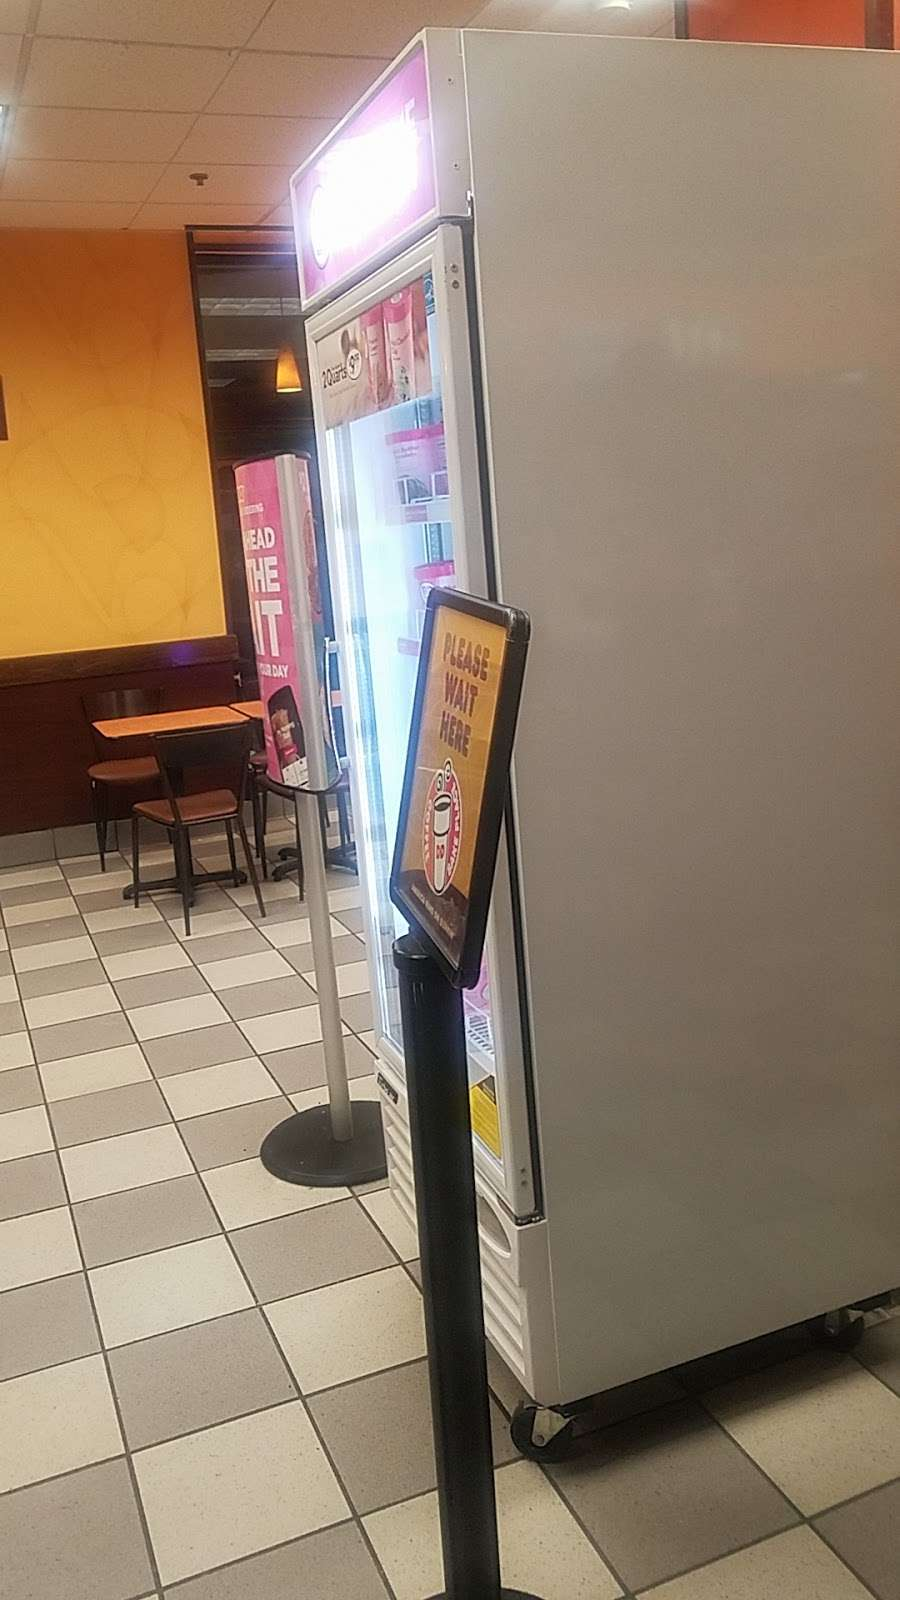 Dunkin Donuts - cafe  | Photo 7 of 10 | Address: 850 Bronx River Rd, Yonkers, NY 10708, USA | Phone: (914) 237-5921